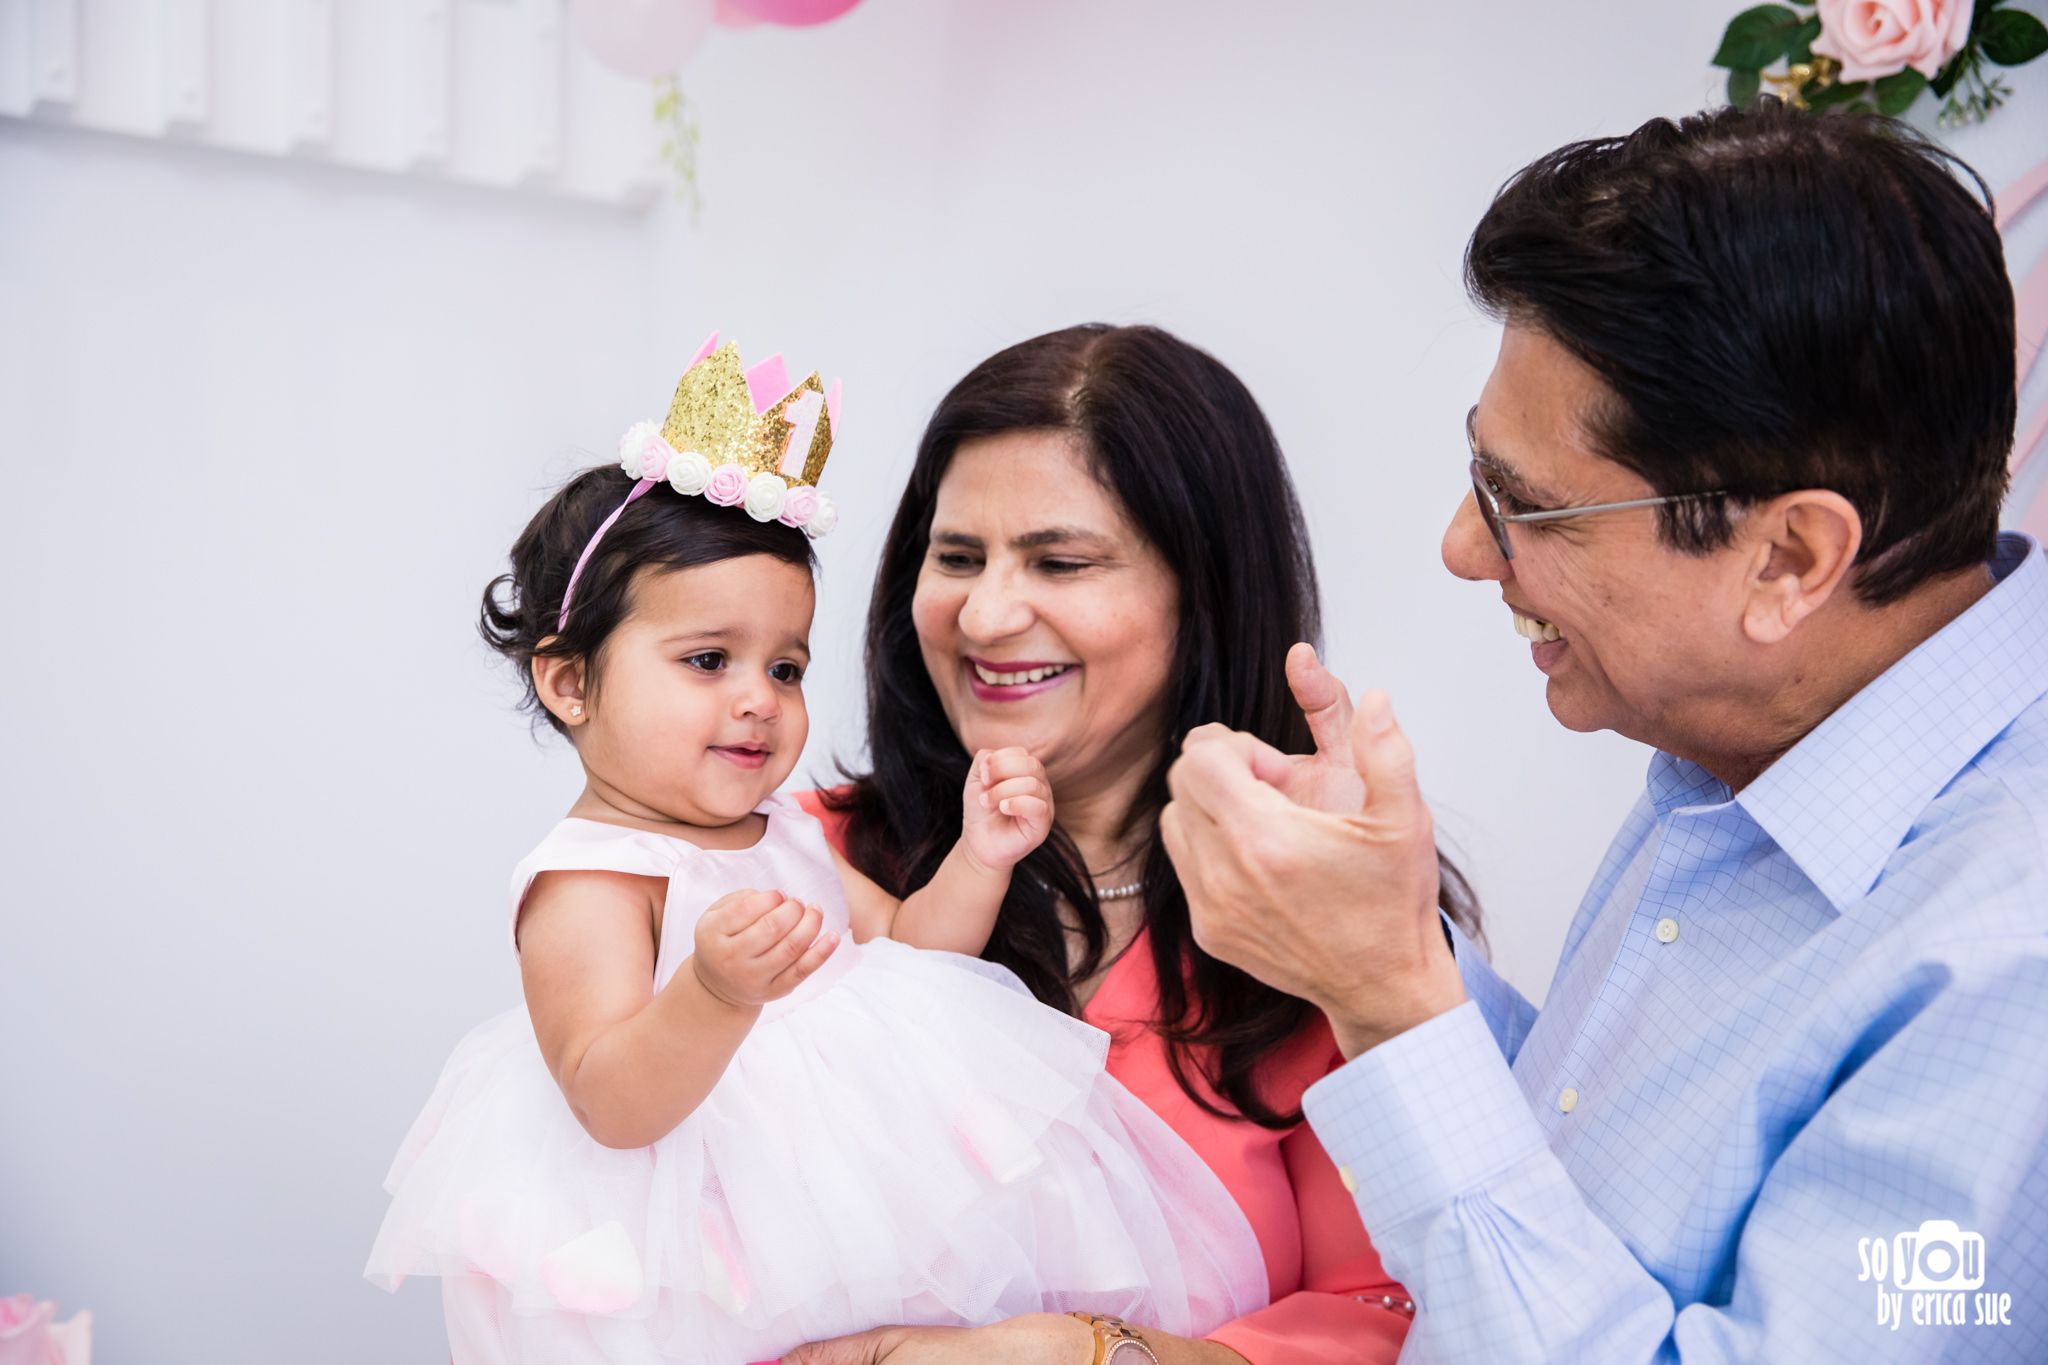 so-you-by-erica-sue-first-birthday-photographer-pembroke-pines-5987.jpg